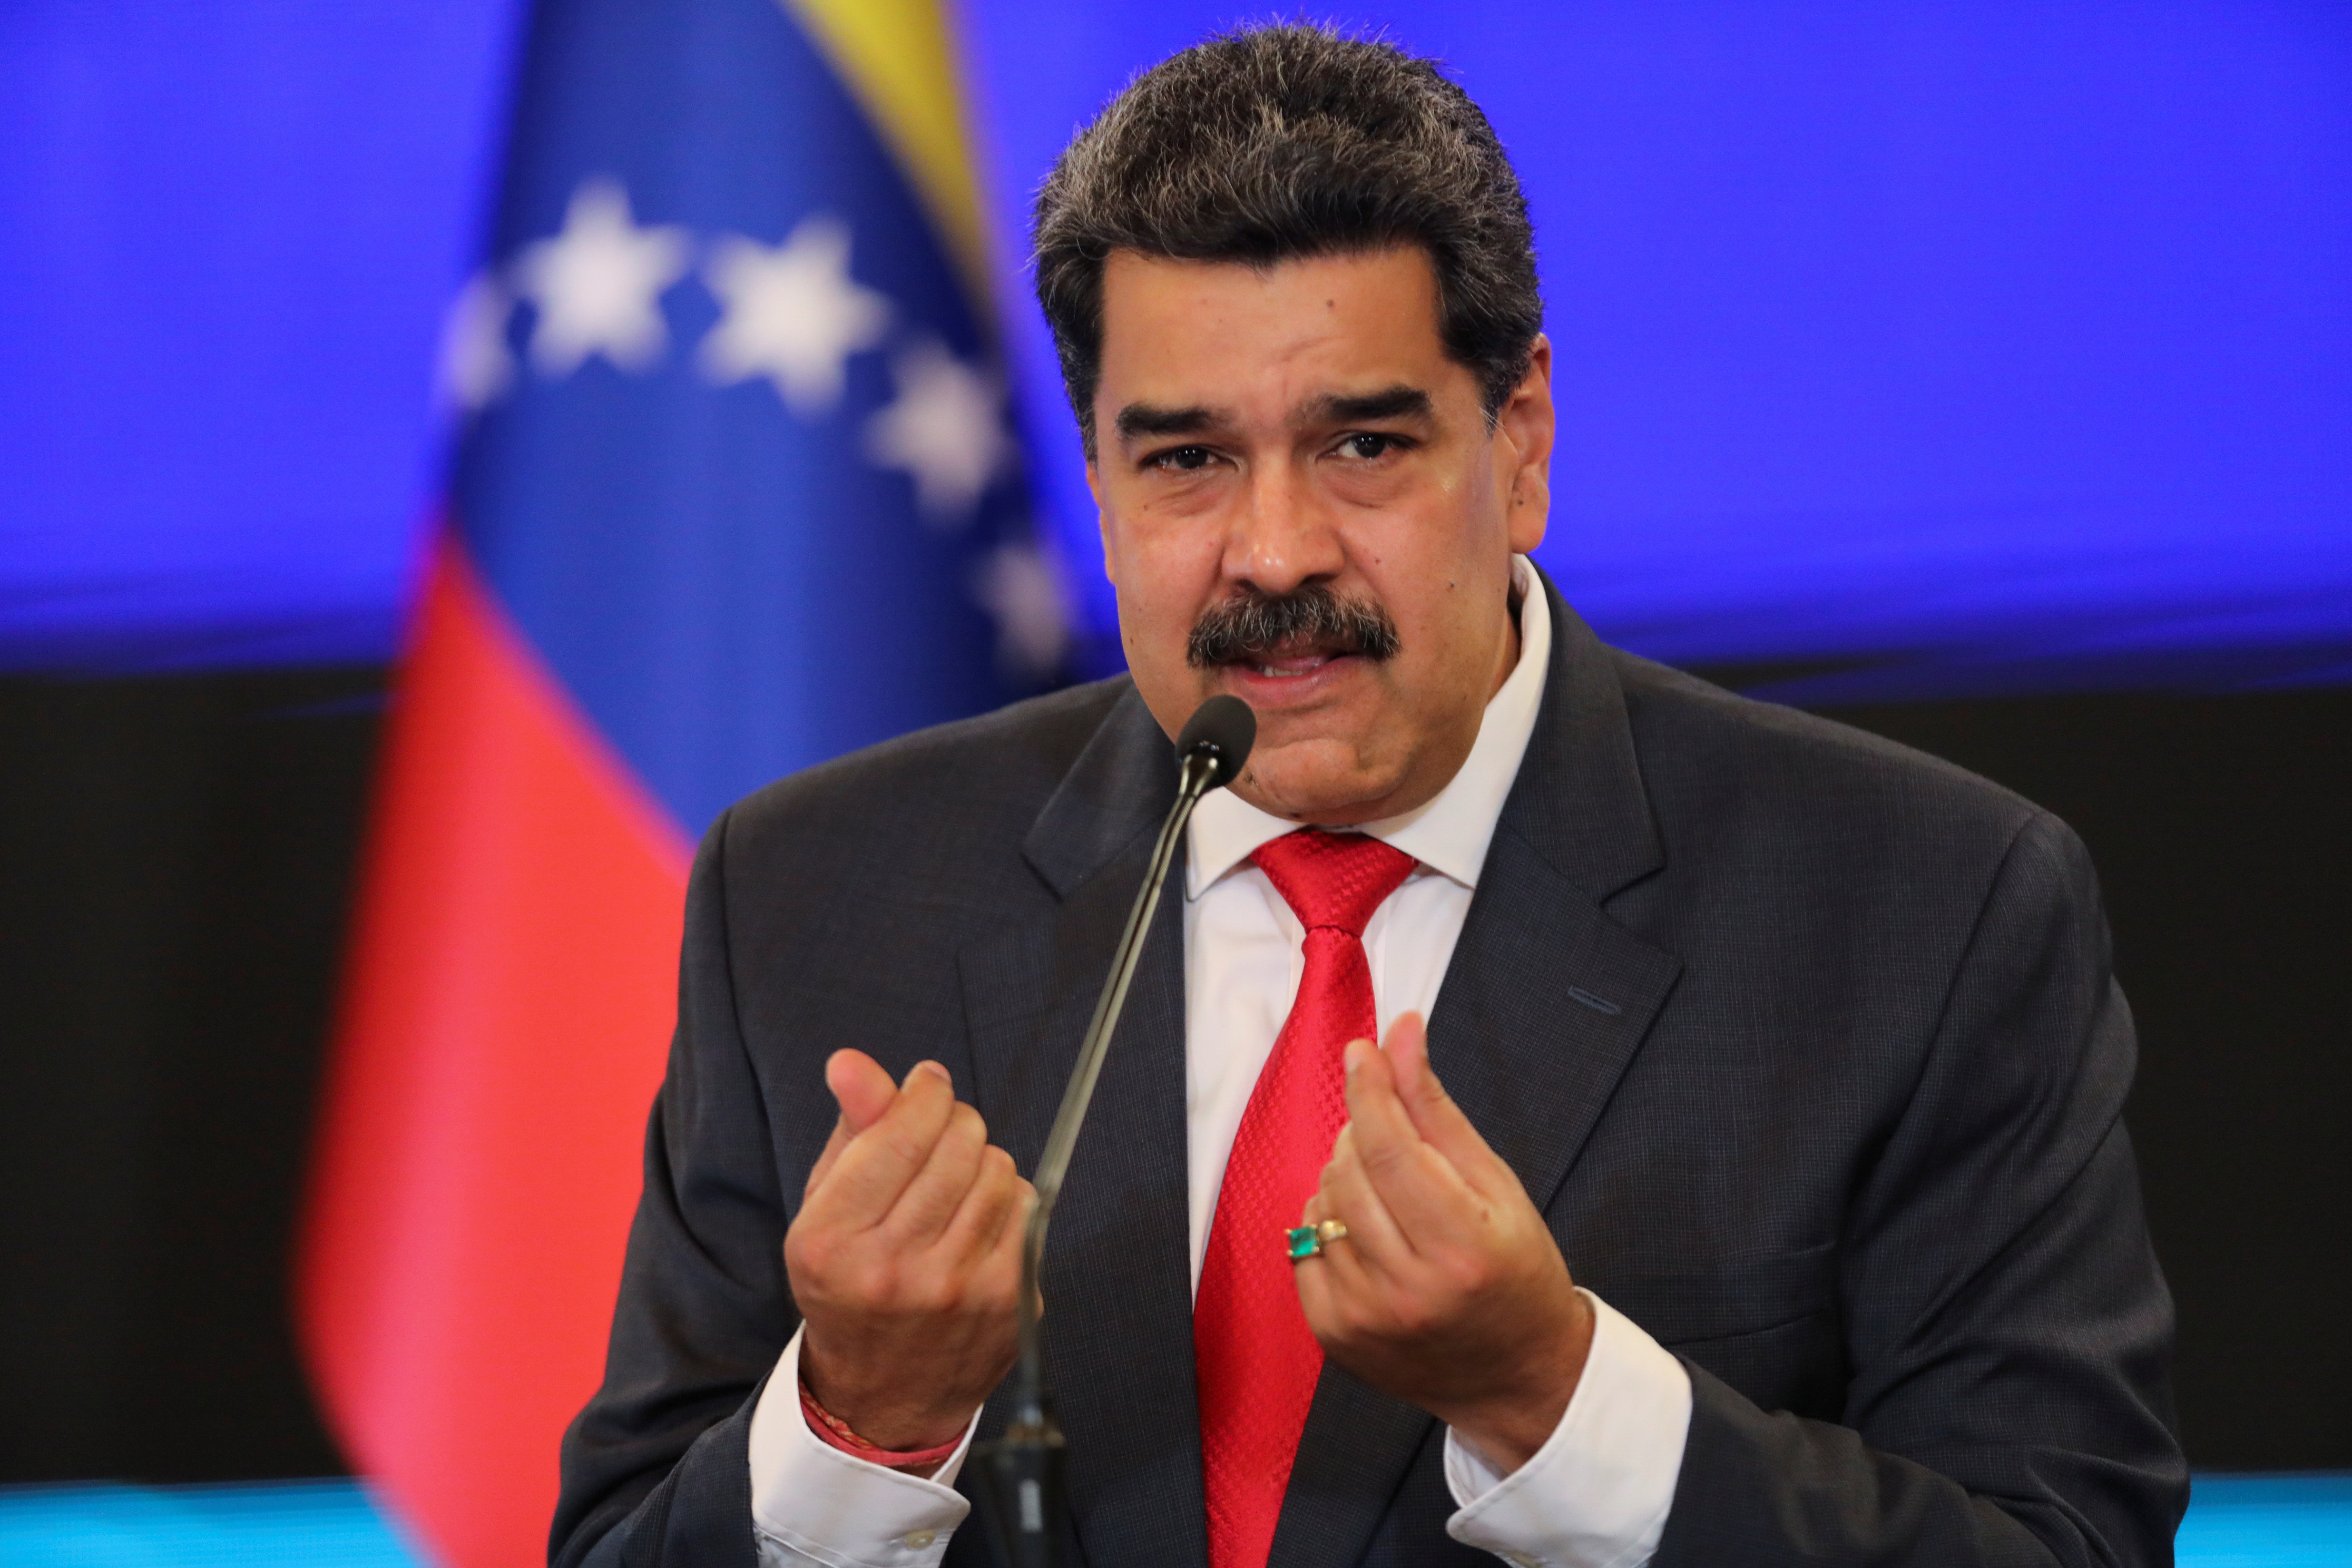 Venezuelan President Nicolas Maduro gestures as he speaks during a press conference following the ruling Socialist Party's victory in legislative elections that were boycotted by the opposition in Caracas, Venezuela December 8, 2020. REUTERS/Manaure Quintero/File Photo